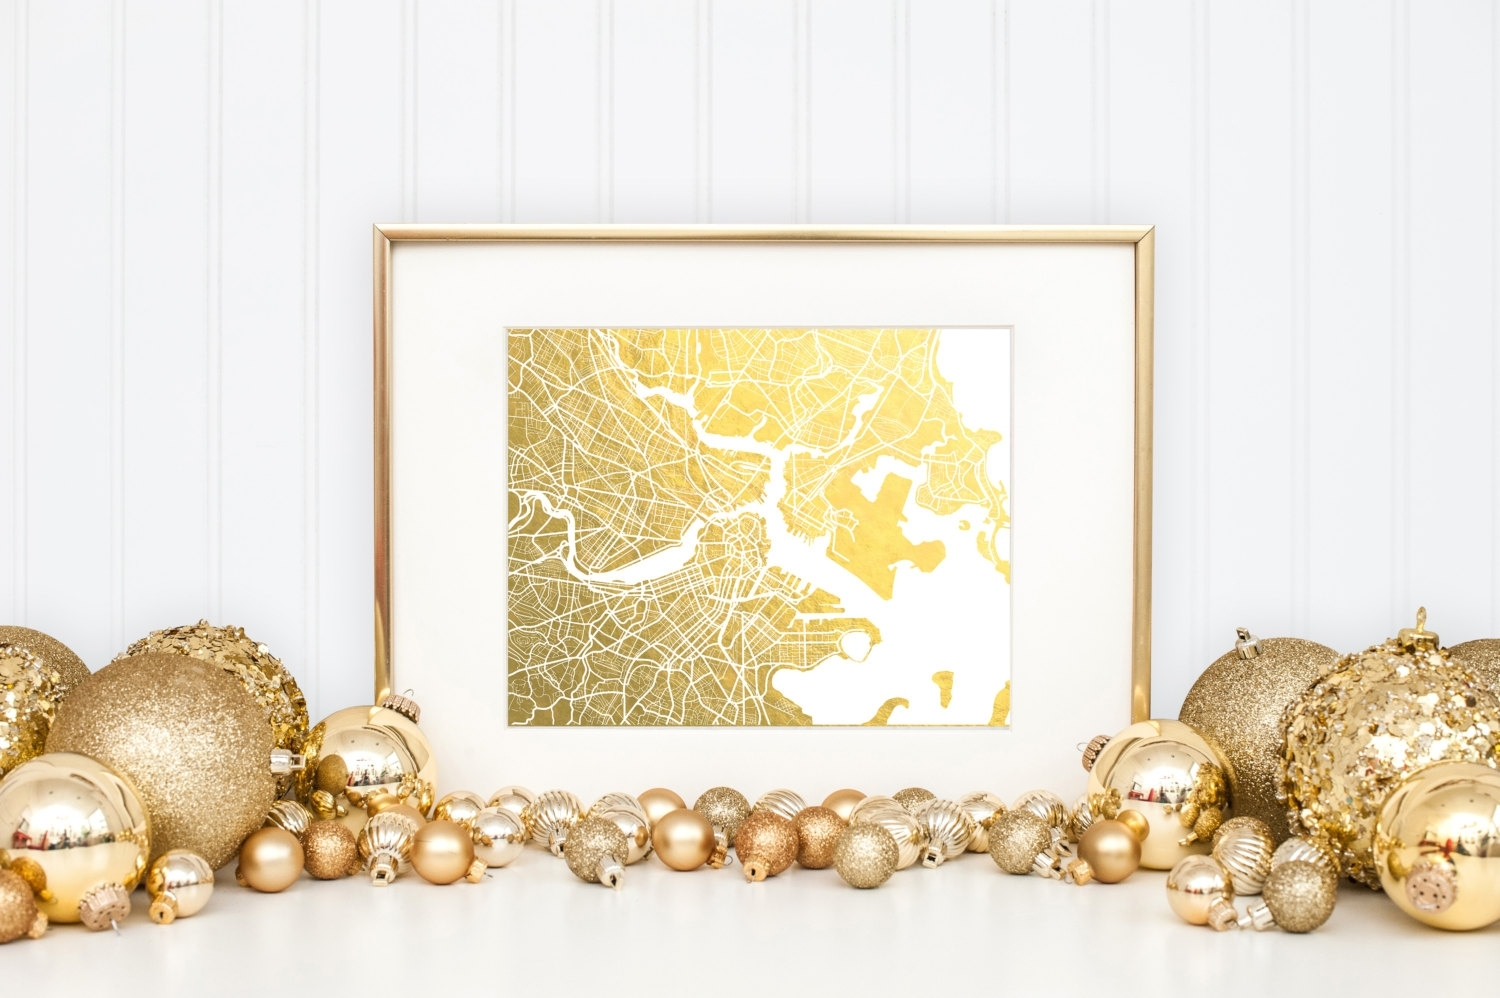 24 Nonpareil Gold Wall Decor That Surprising Regarding Most Up To Date Gold Wall Art (View 1 of 15)